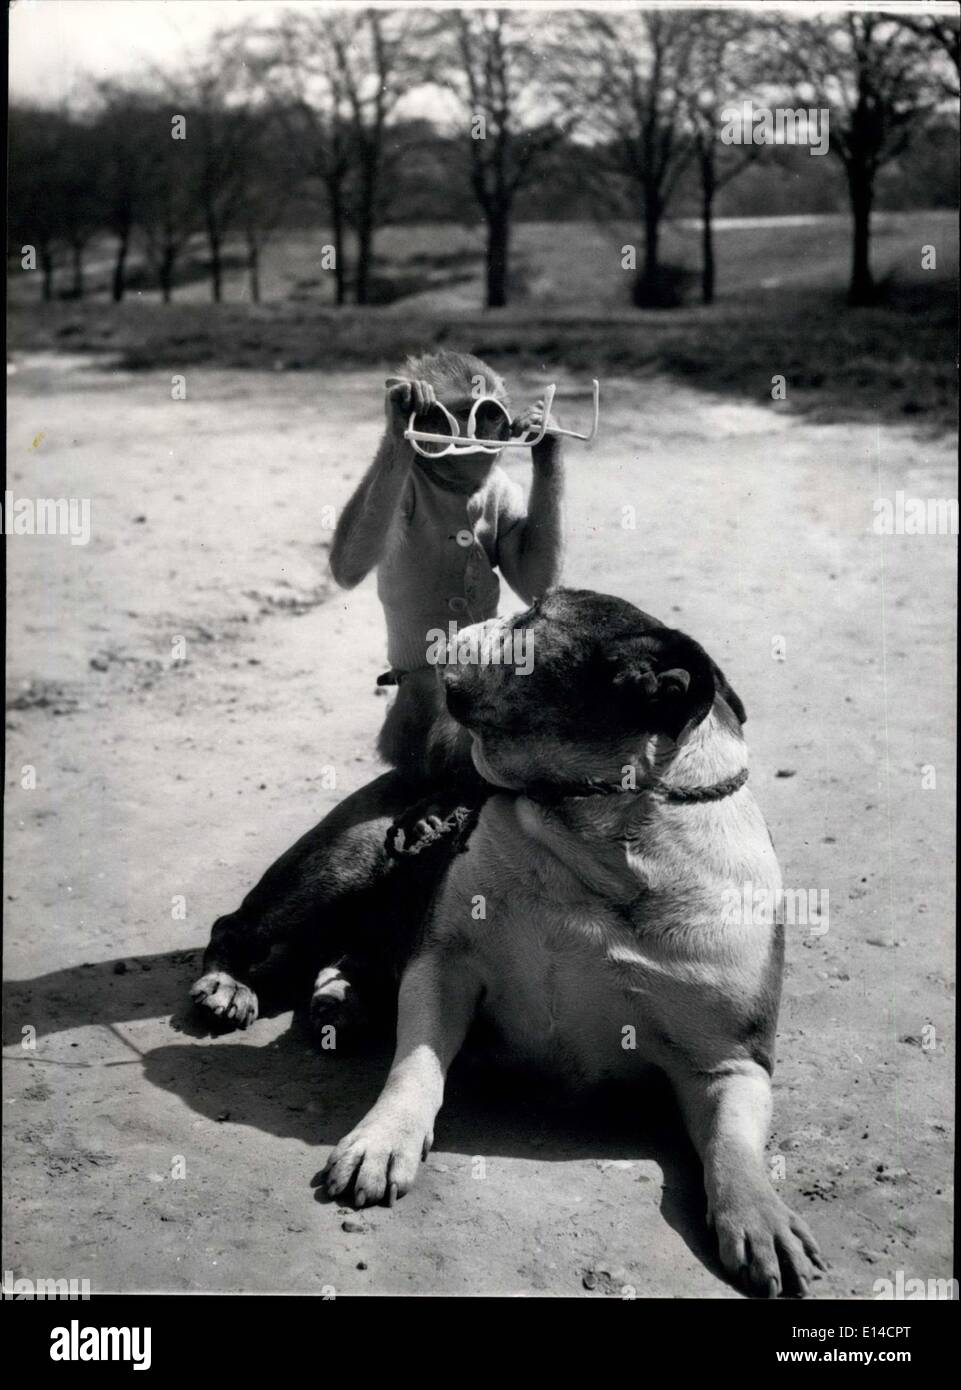 Apr. 17, 2012 - Go on with you. They're the wrong way round: Rocky the bulldog, enjoys playing with his Pal Jenny, the Rhesus monkey on Hampstead Heath, near their home. A pair of sunglasses keeps them amused for a long time. - Stock Image